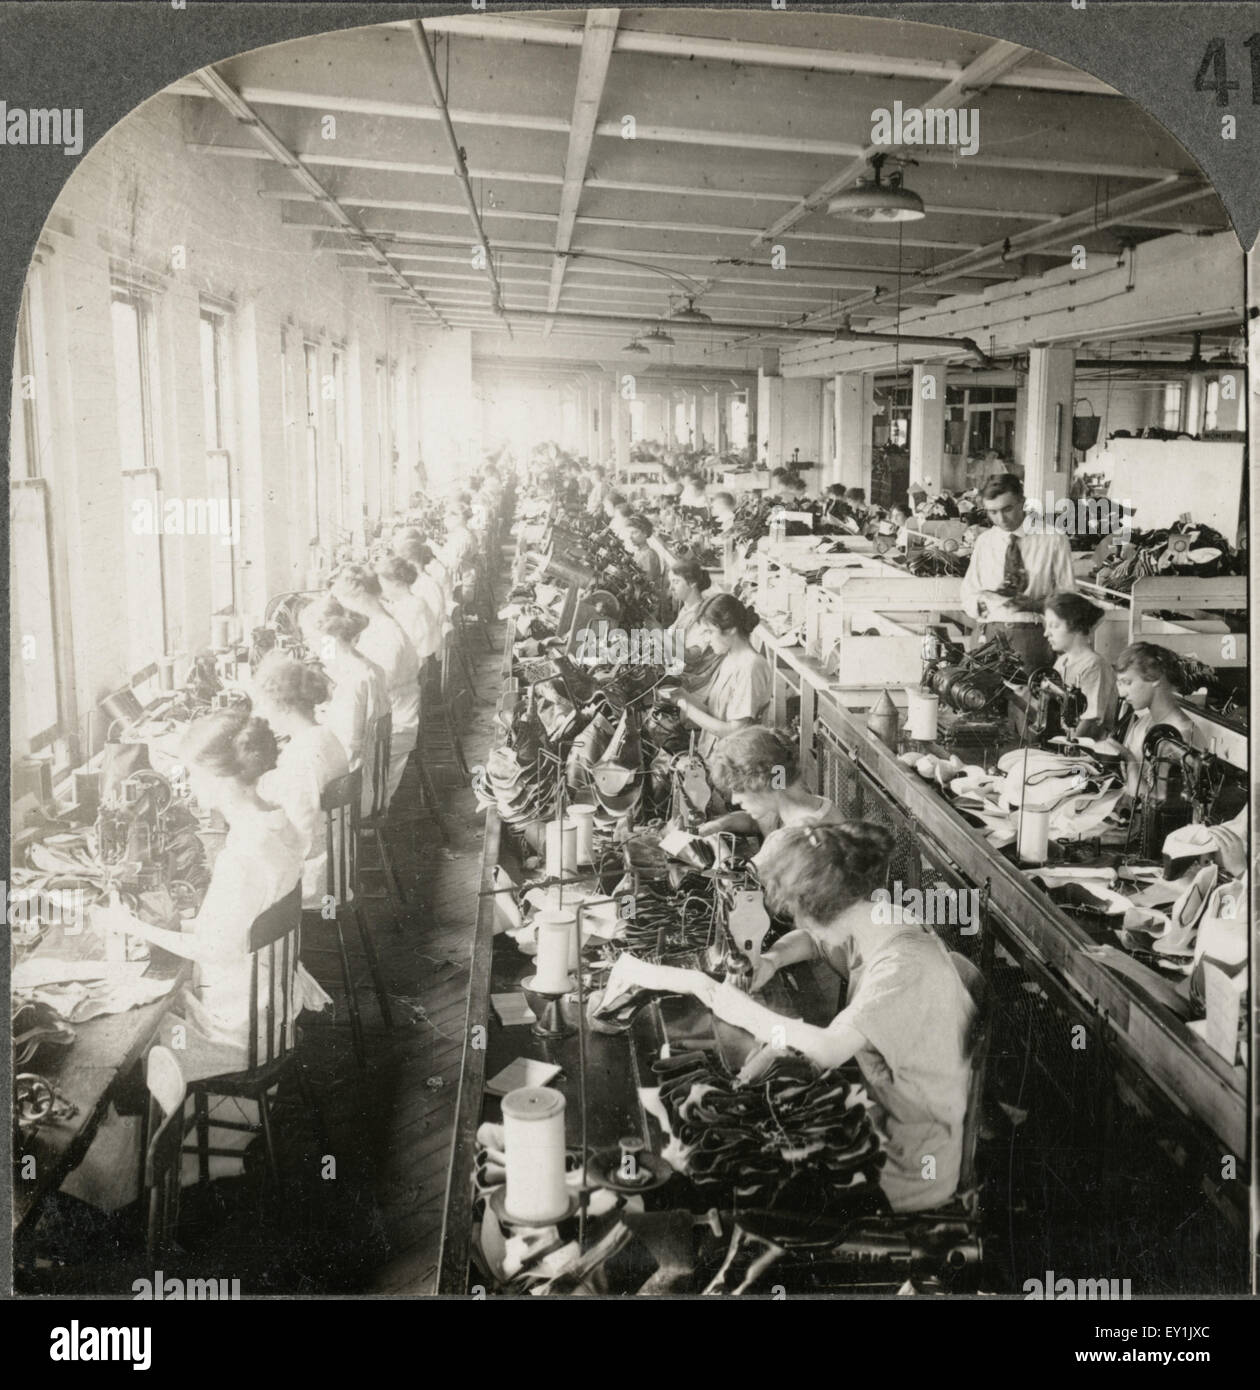 Shoe Factory: B&w Sewing Stock Photos & B&w Sewing Stock Images